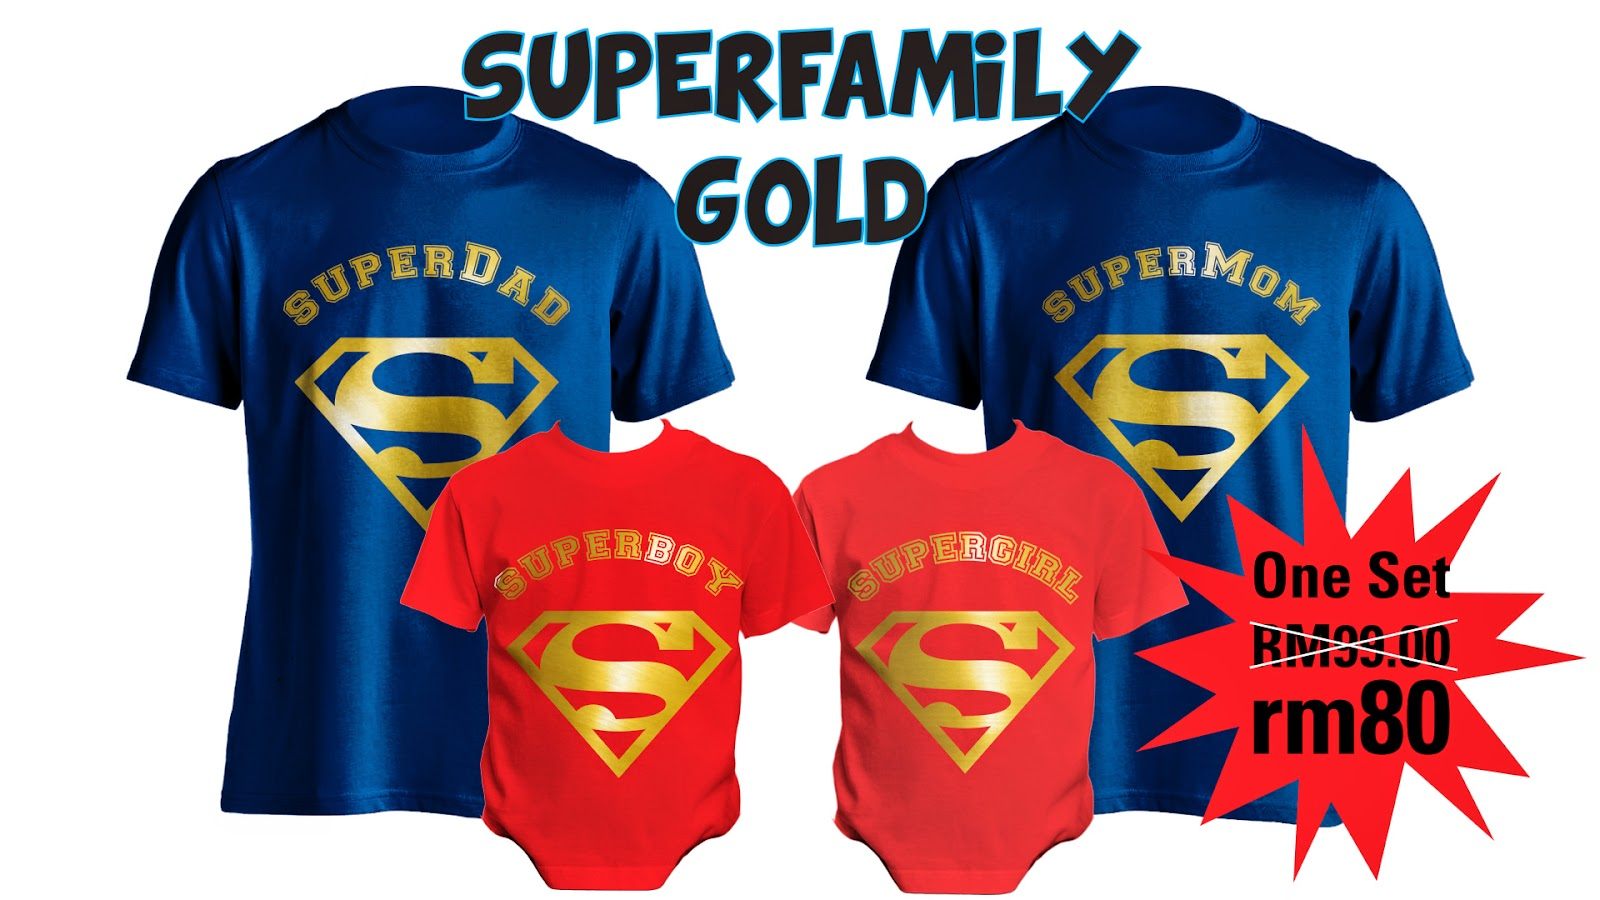 t Shirt Printing Design For Family Family Apparel Design T-shirt